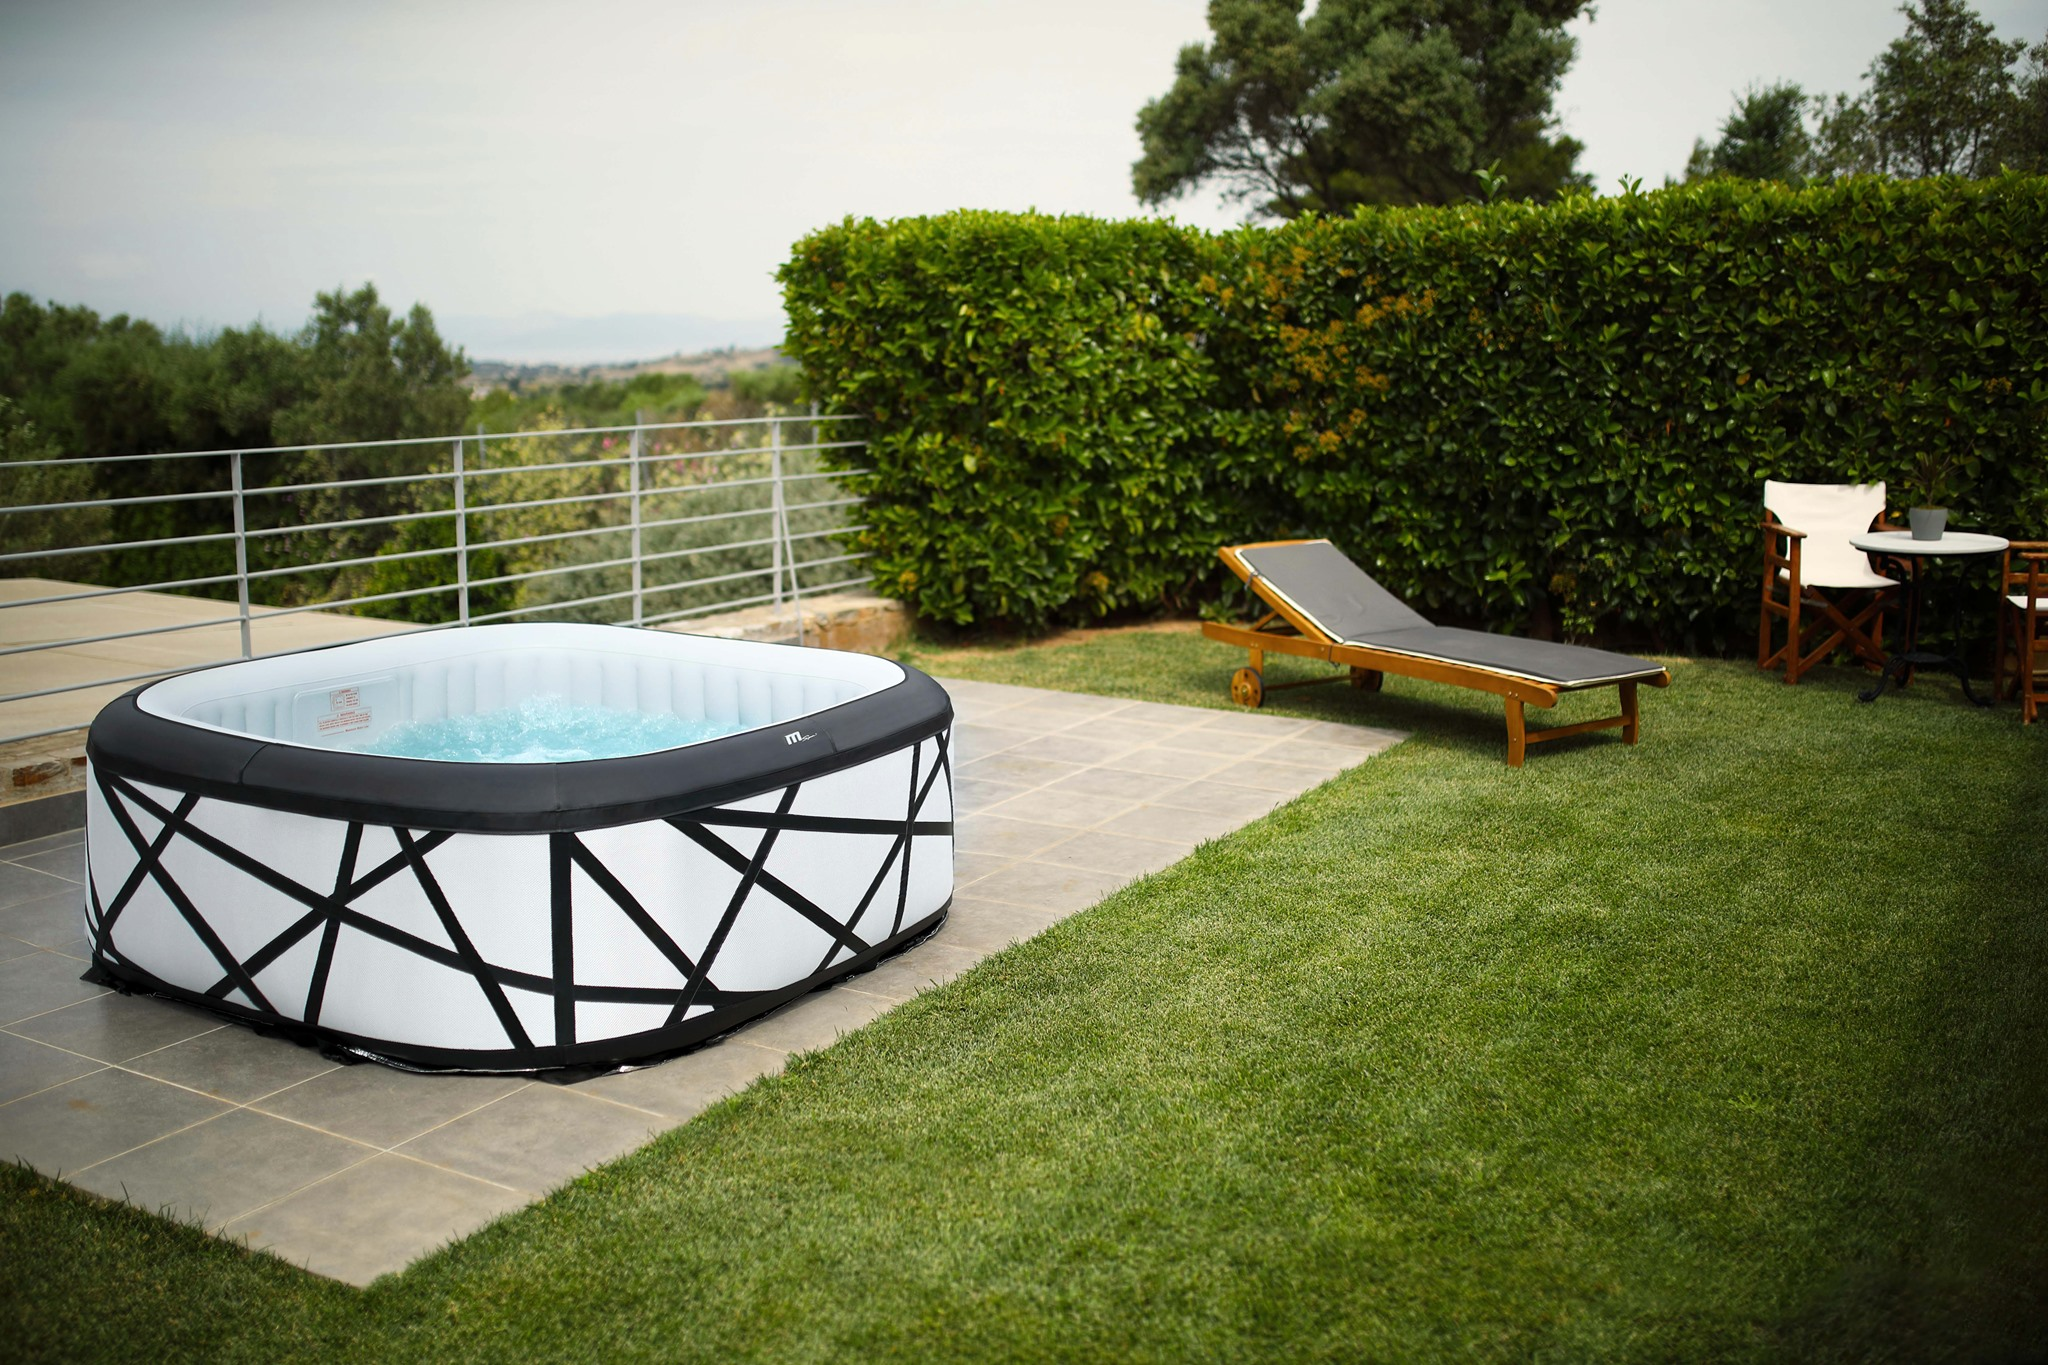 Completely surround your body in a blissful cushion of massaging bubbles in the MSpa SOHO cube air bath. The extra-spacious square shape allows you to relax fully immersed and supported in luxury.  The variable-speed bubble feature gives y » Spas, Swim Spas & Accessories Fuengirola, Costa Del Sol, Spain